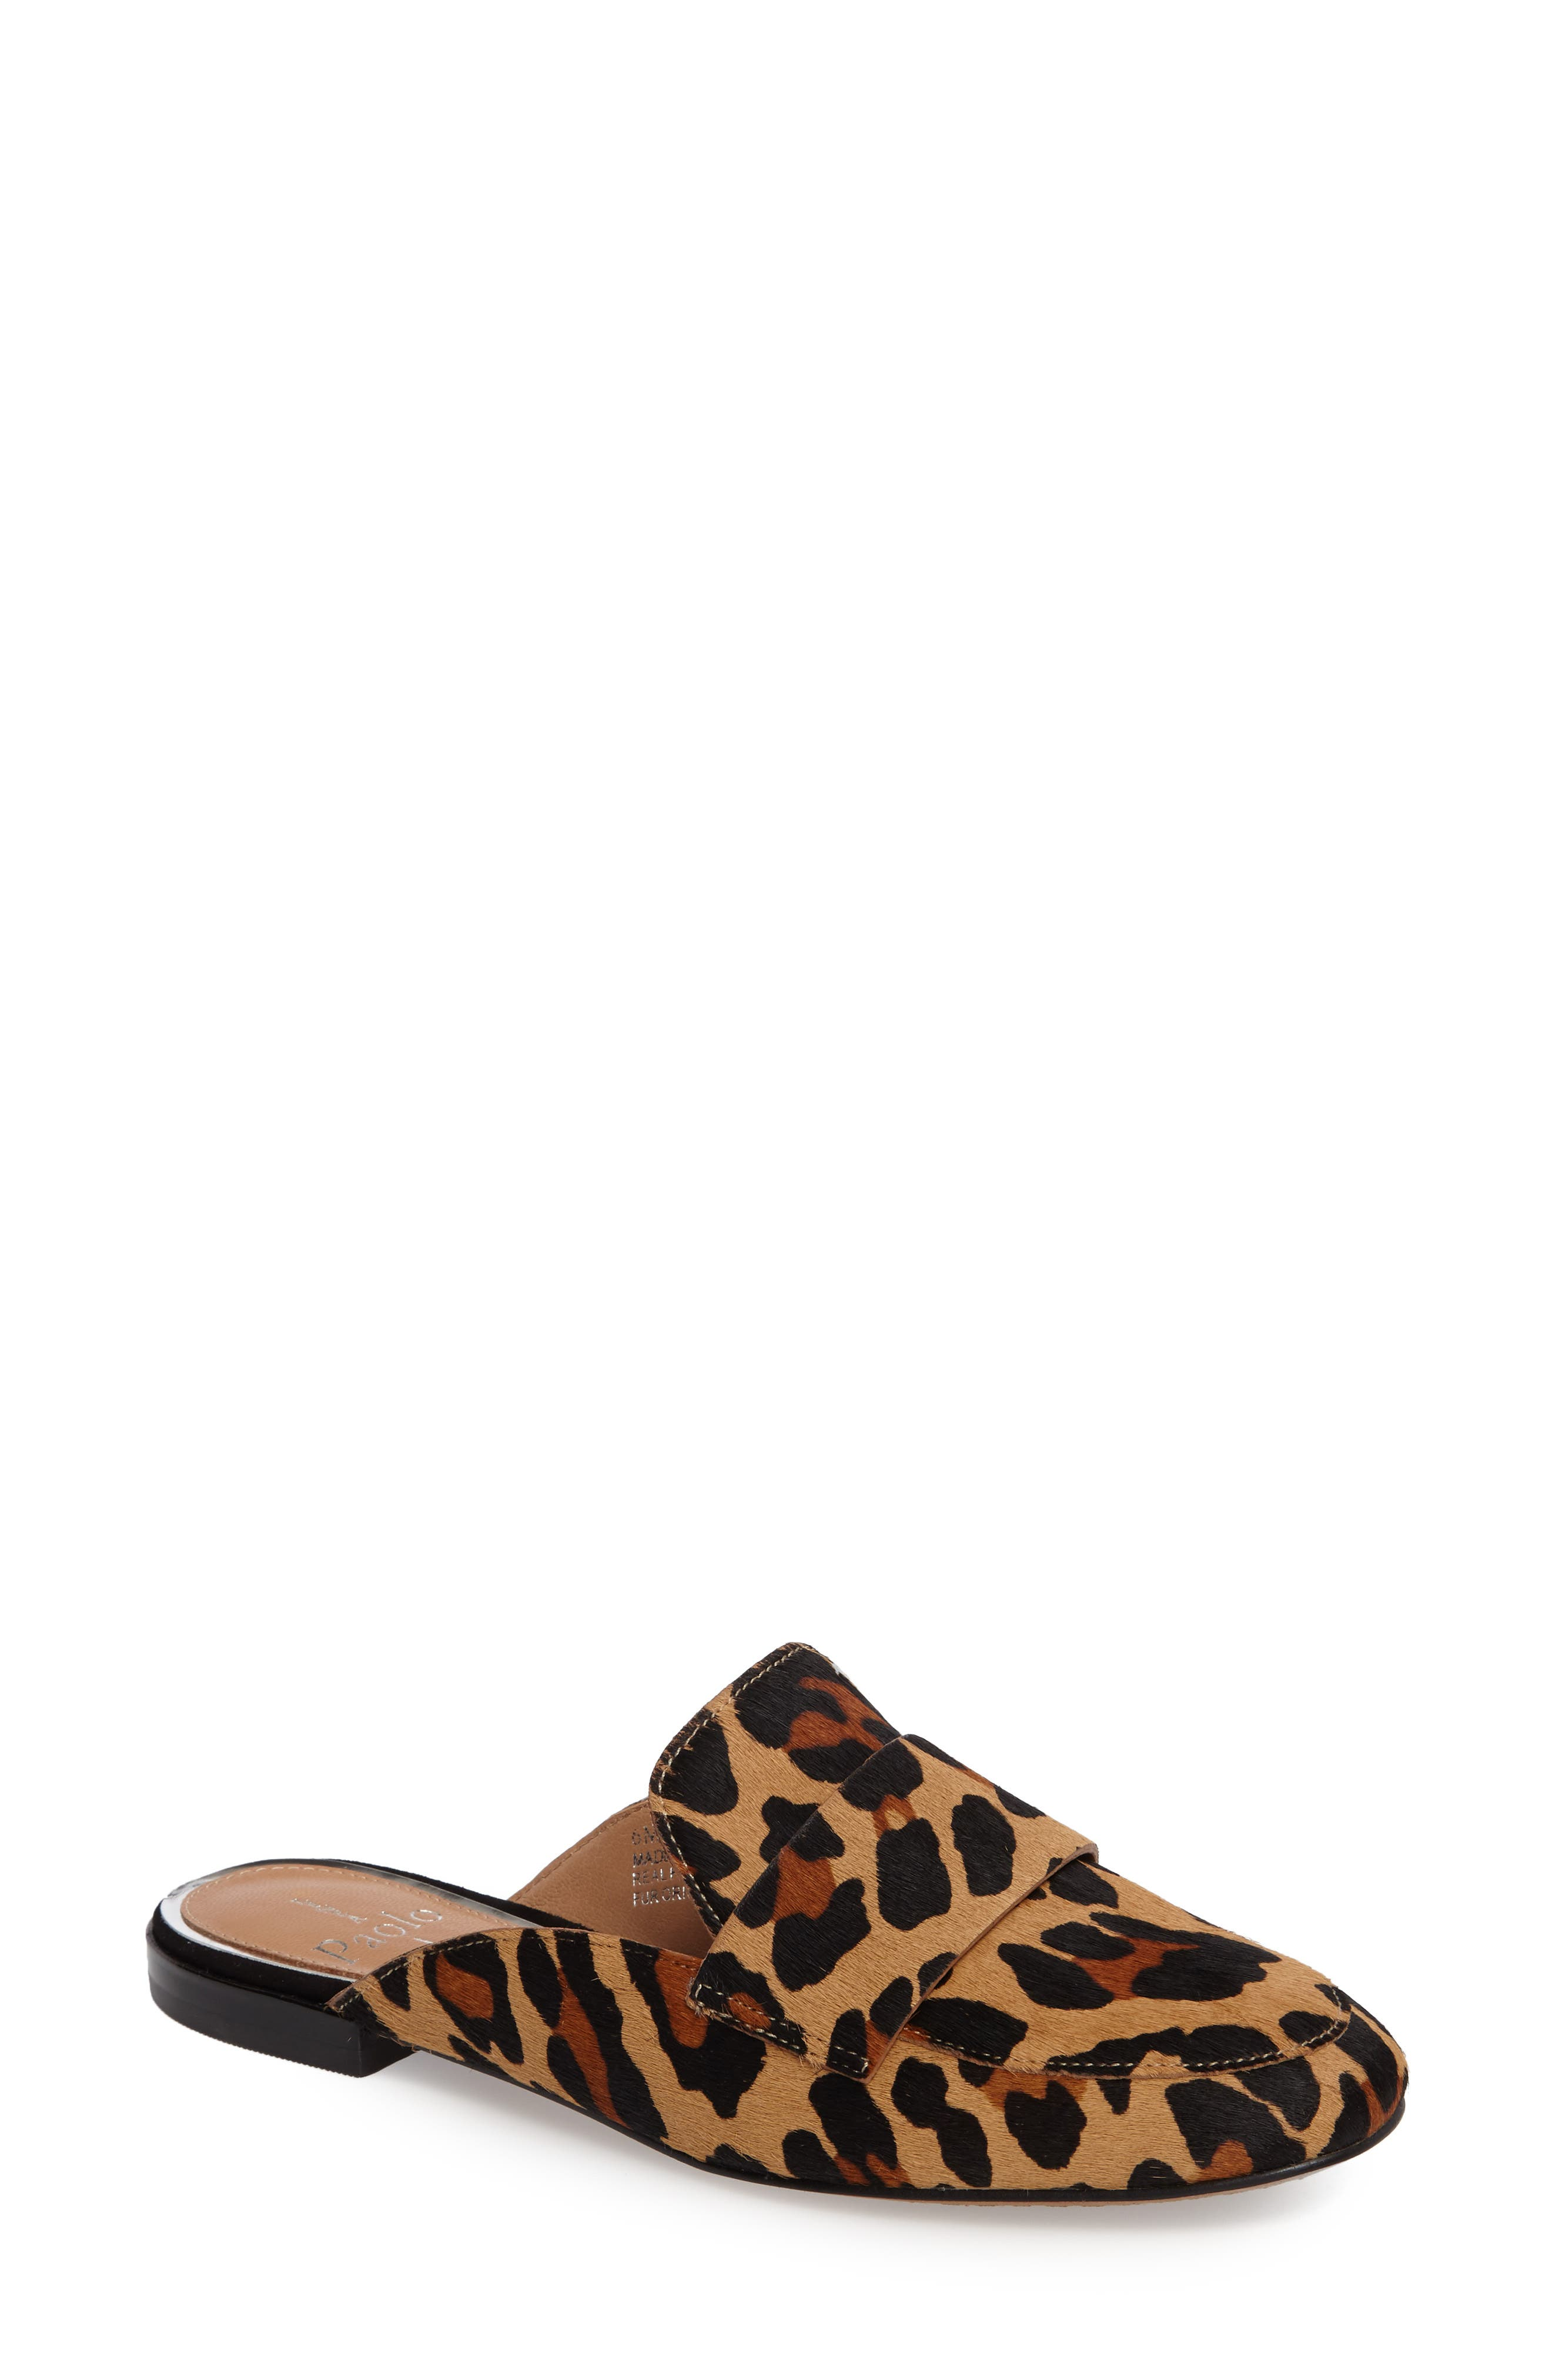 Alternate Image 1 Selected - Linea Paolo Annie Genuine Calf Hair Loafer Mule (Women)